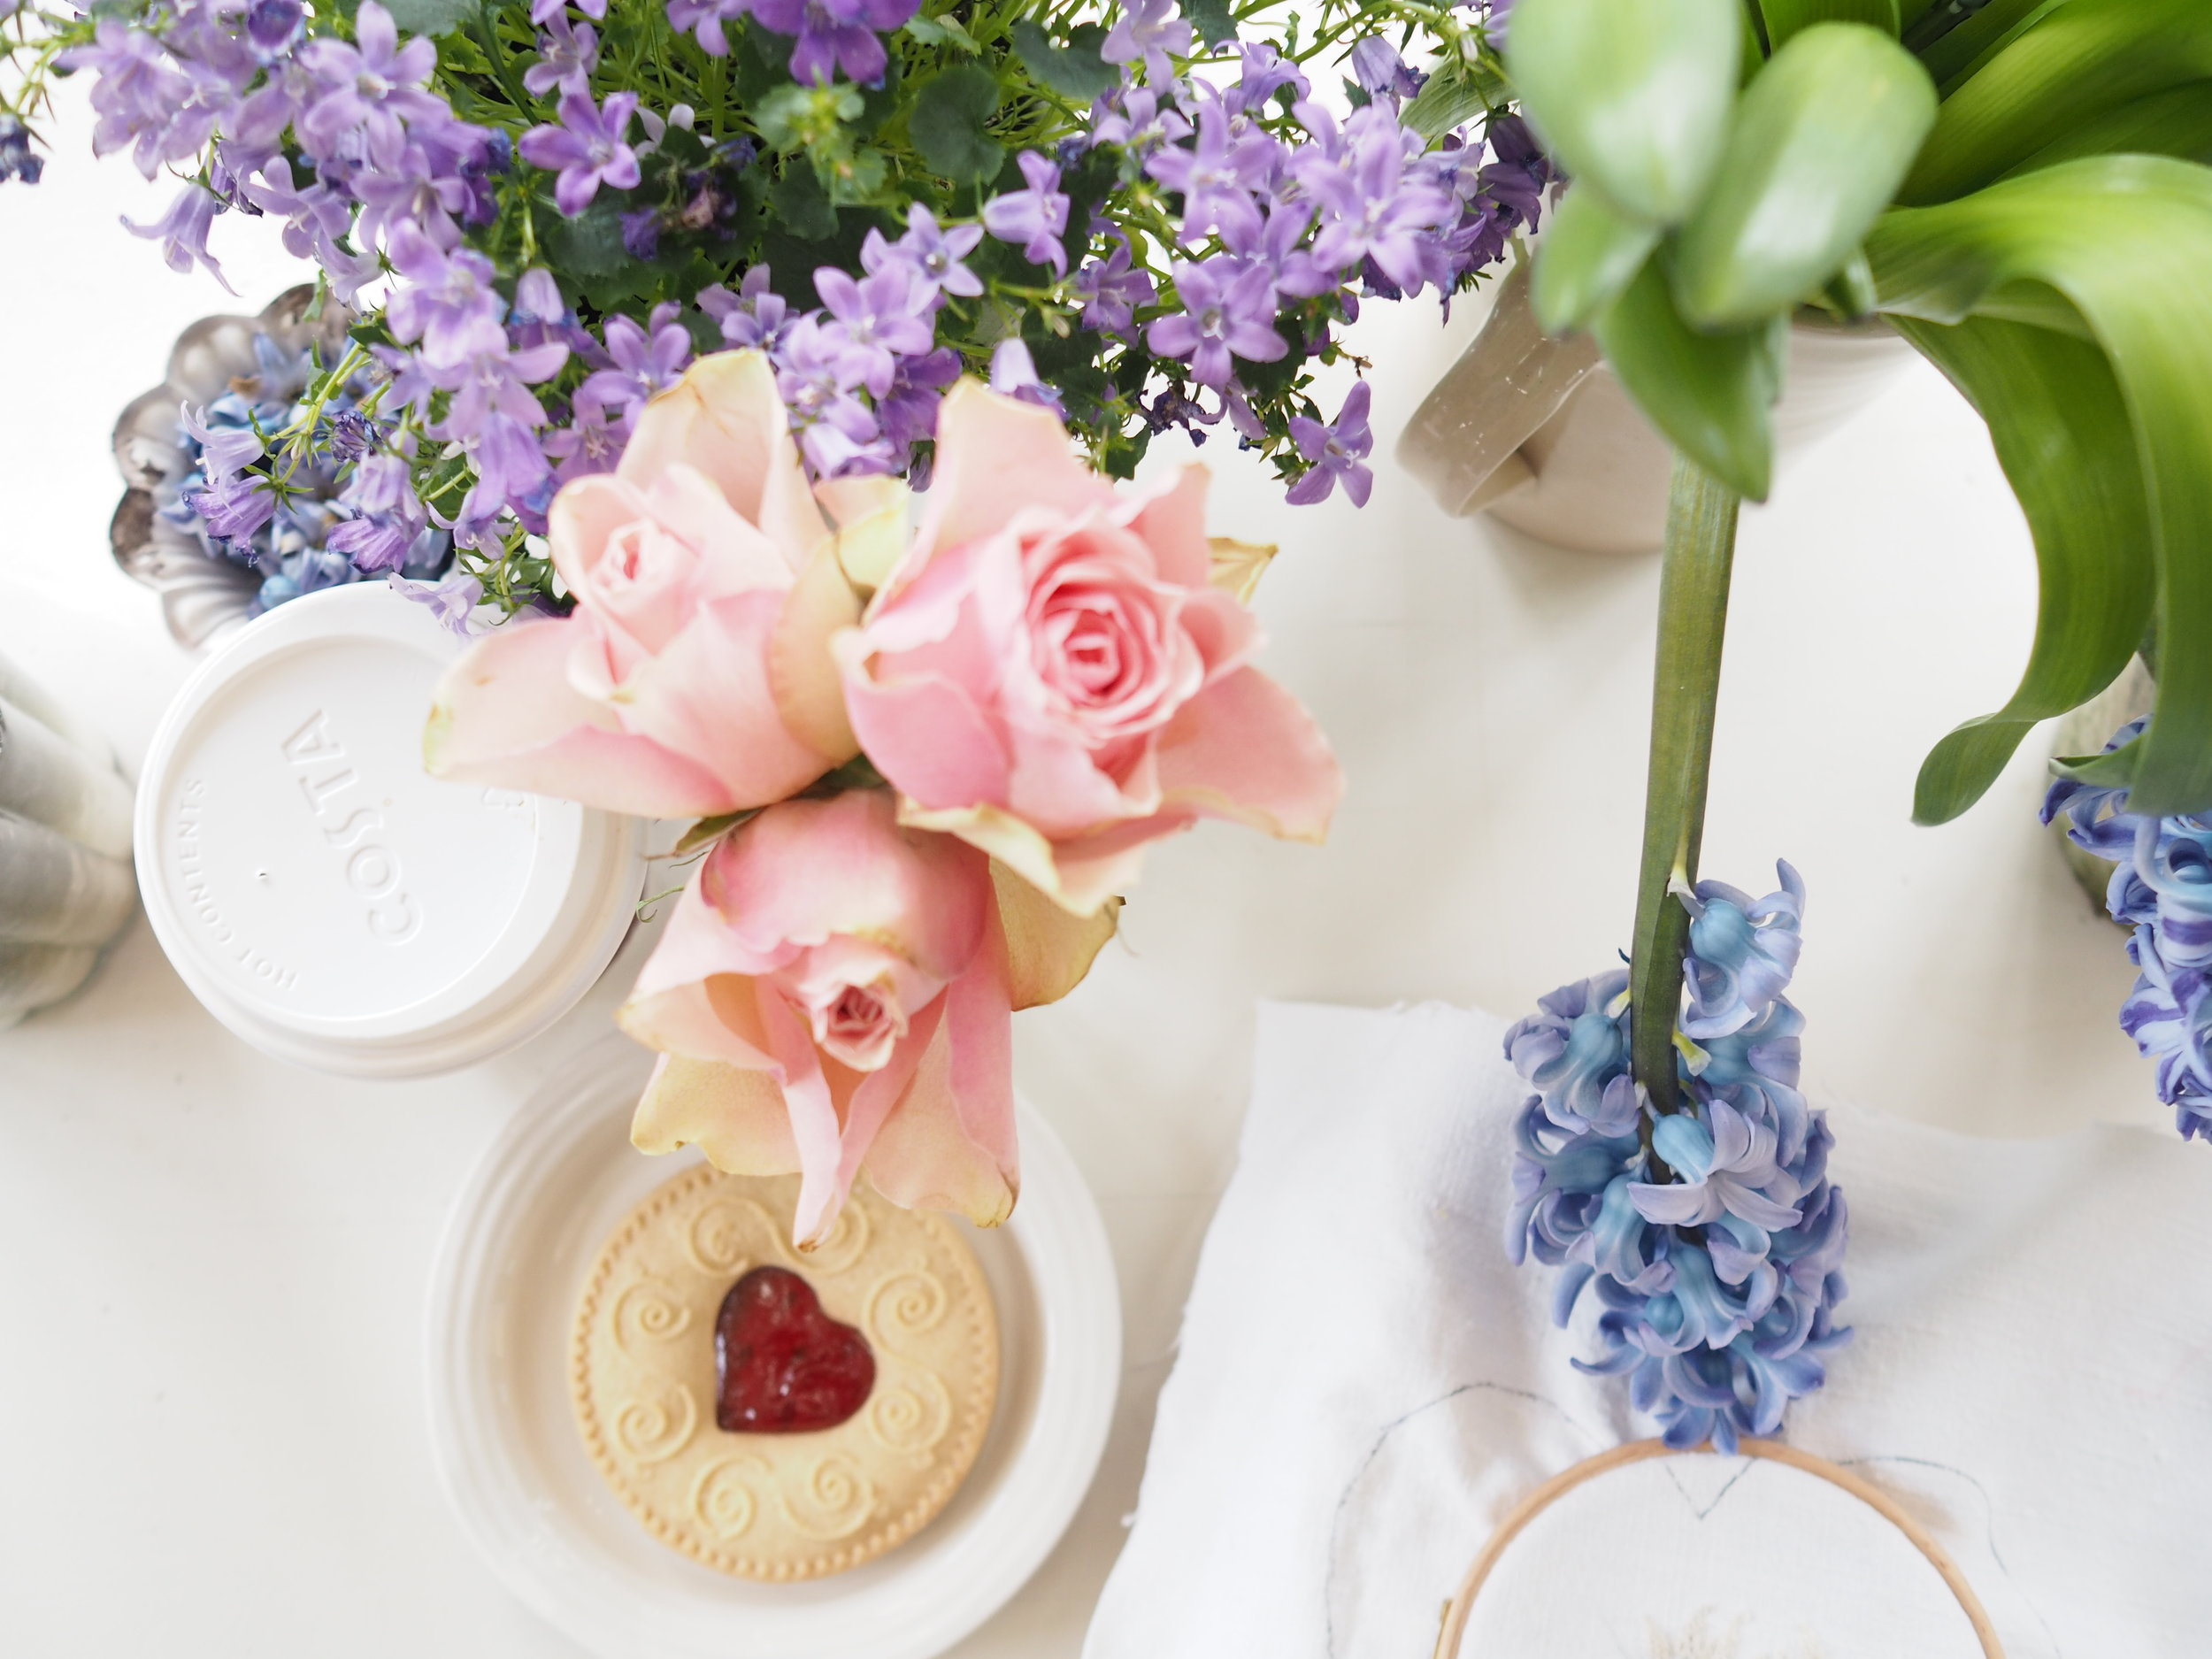 spring flowers and jammy dodgers